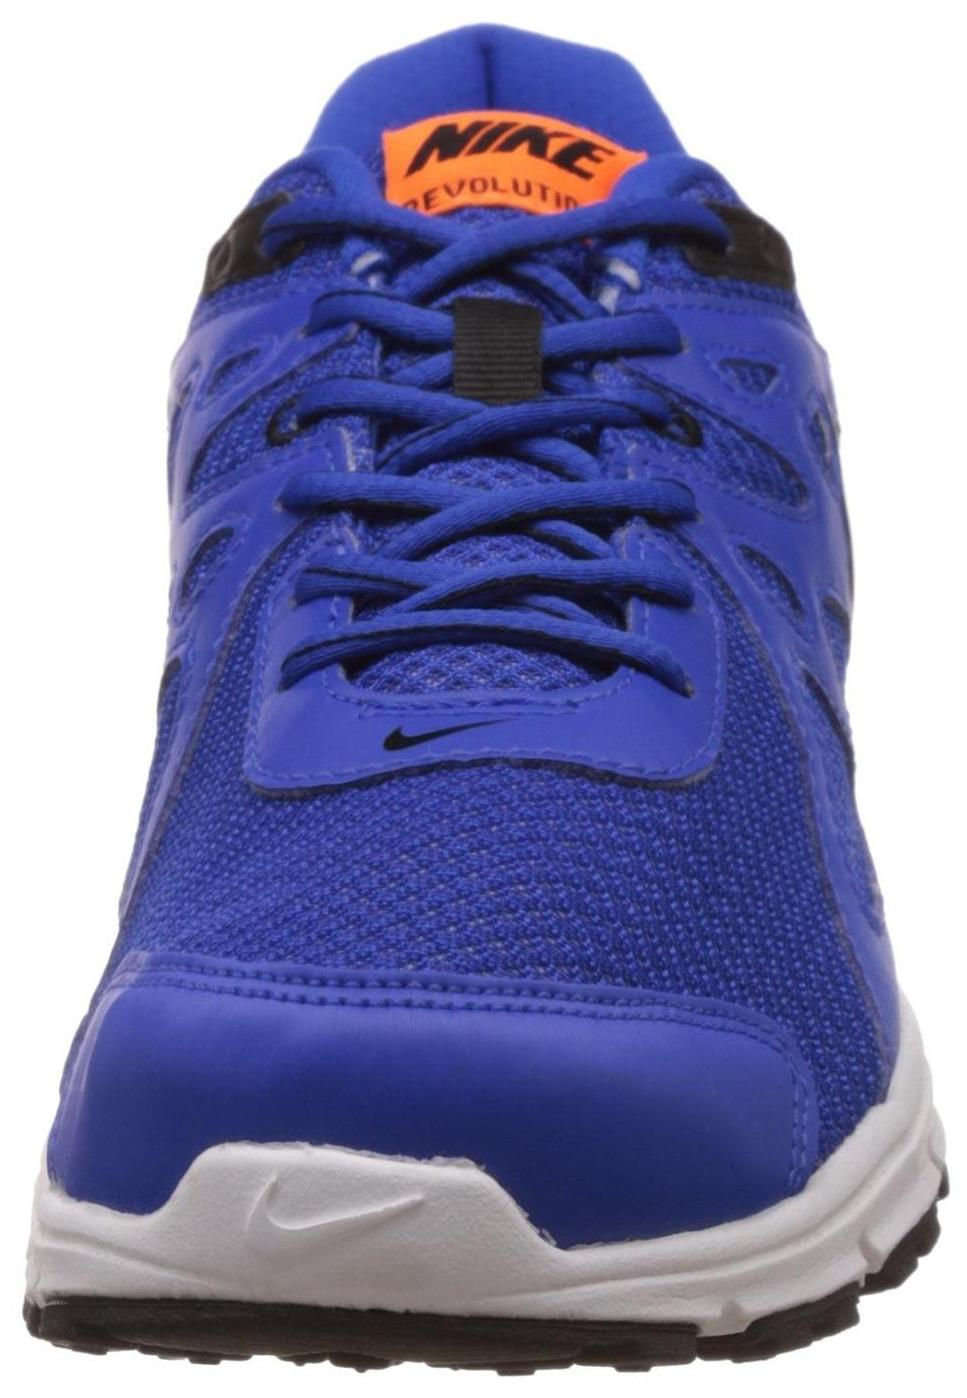 timeless design 9871b 839b9 Nike Men Blue Running Shoes - 554954-409 for Men - Buy Nike Men s Sport  Shoes  Paytm Mall